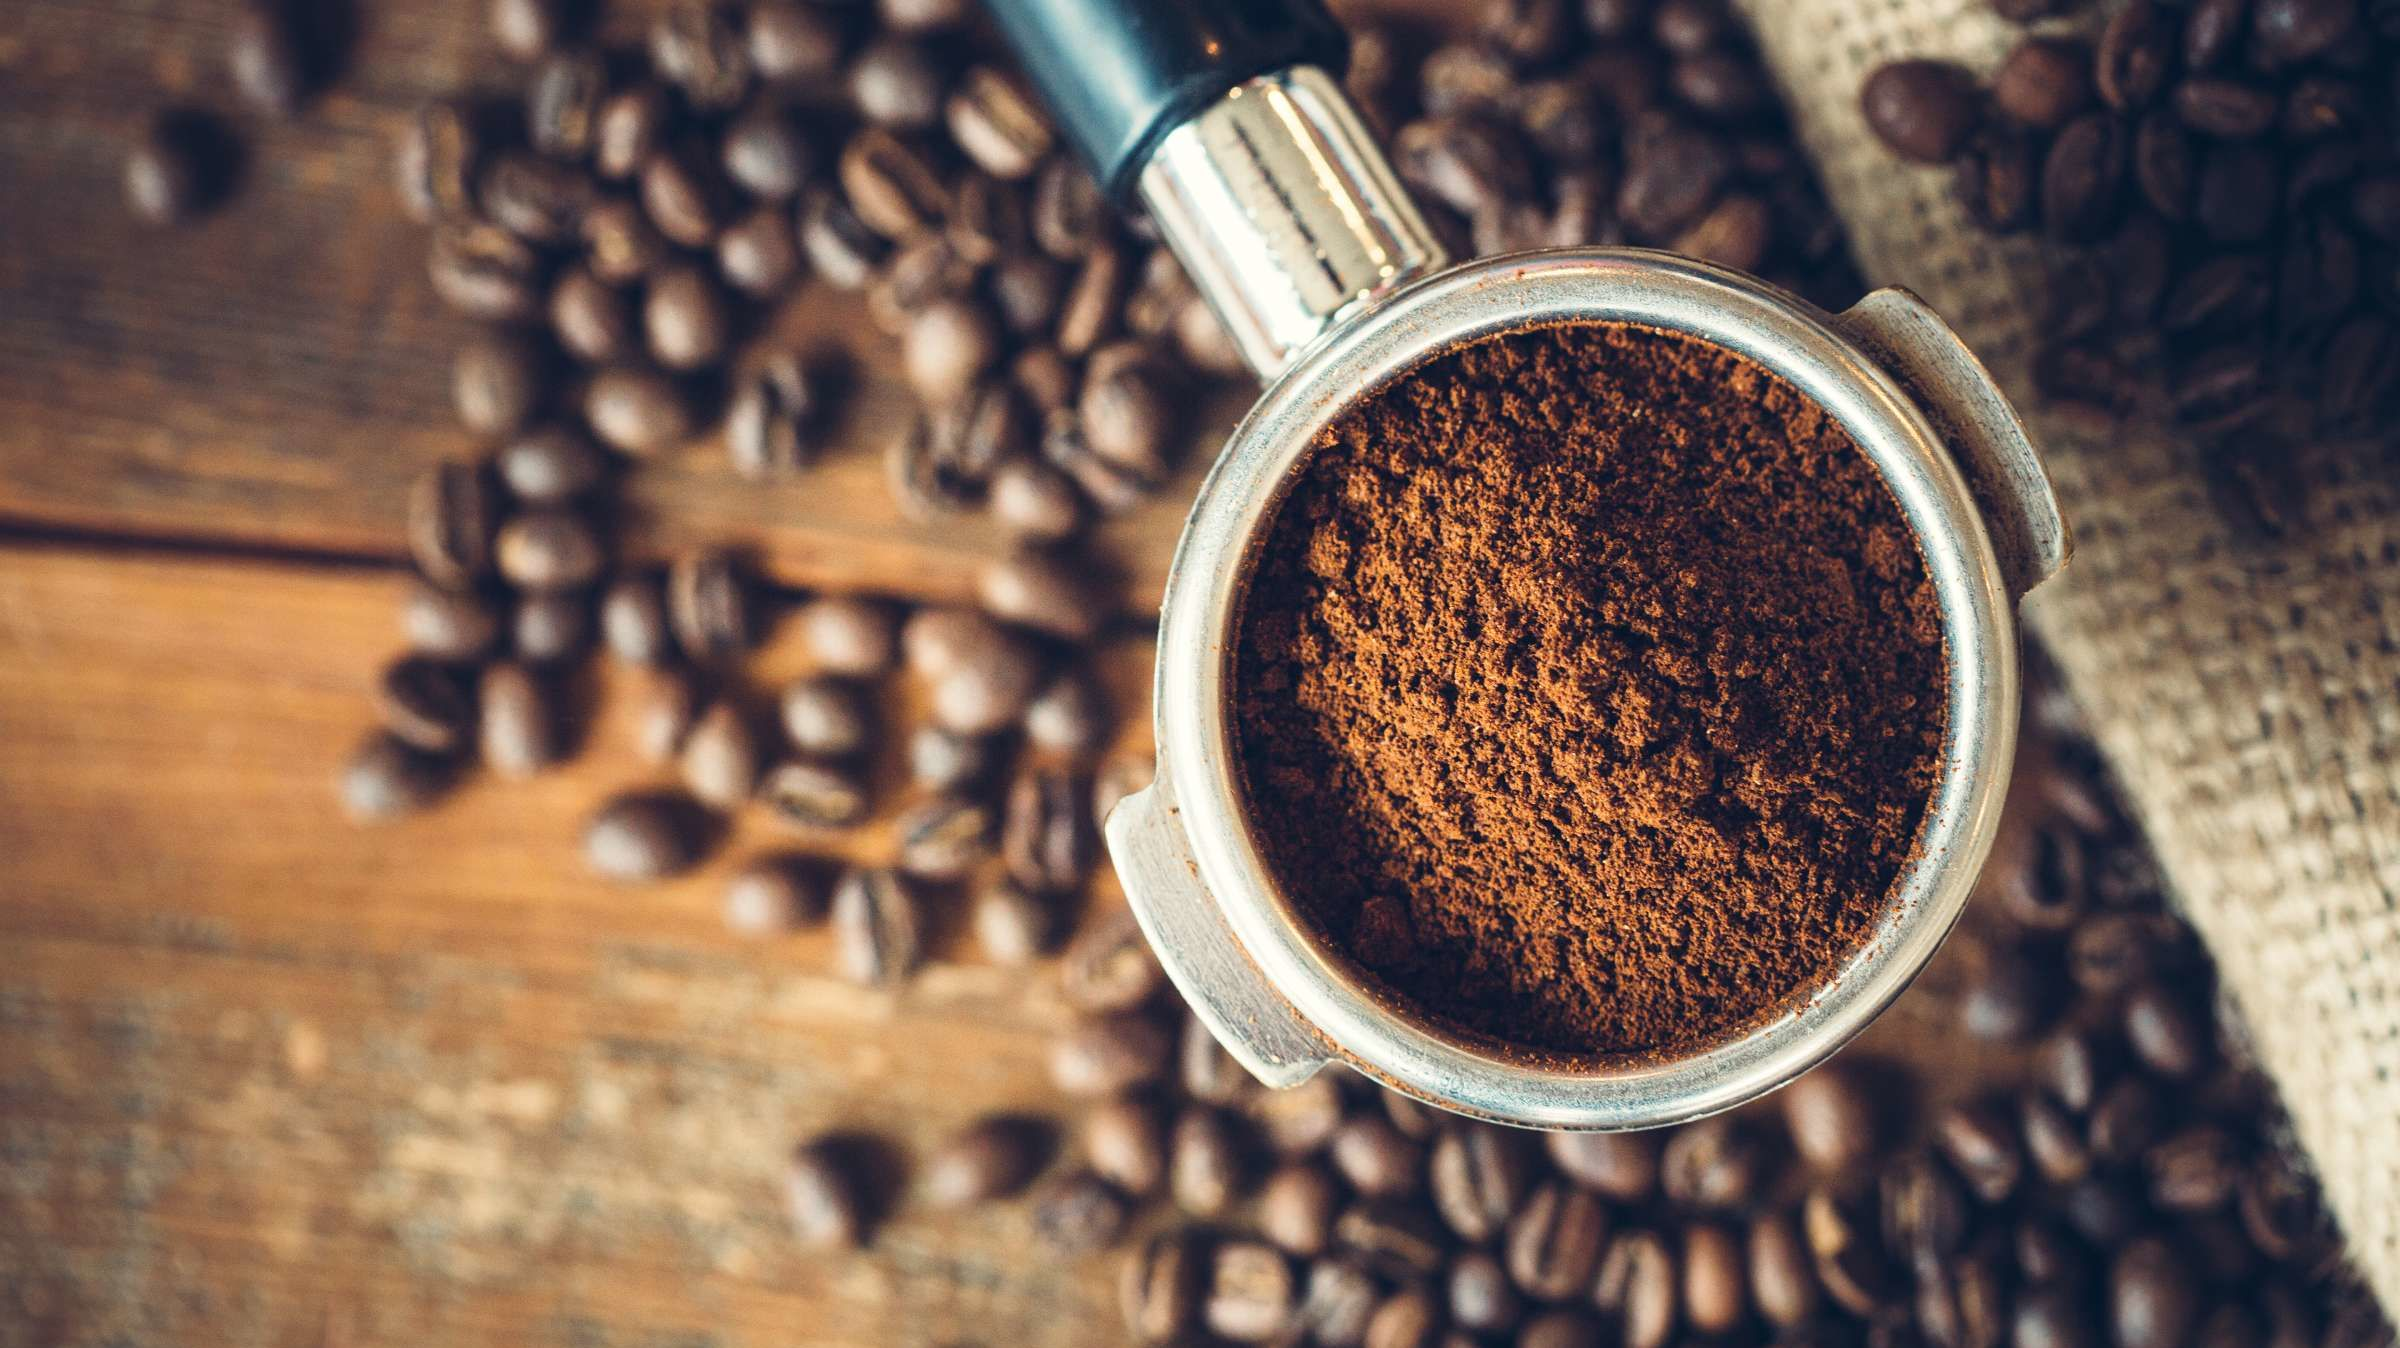 10 Surprising Uses for Coffee That Don't Involve Drinking It